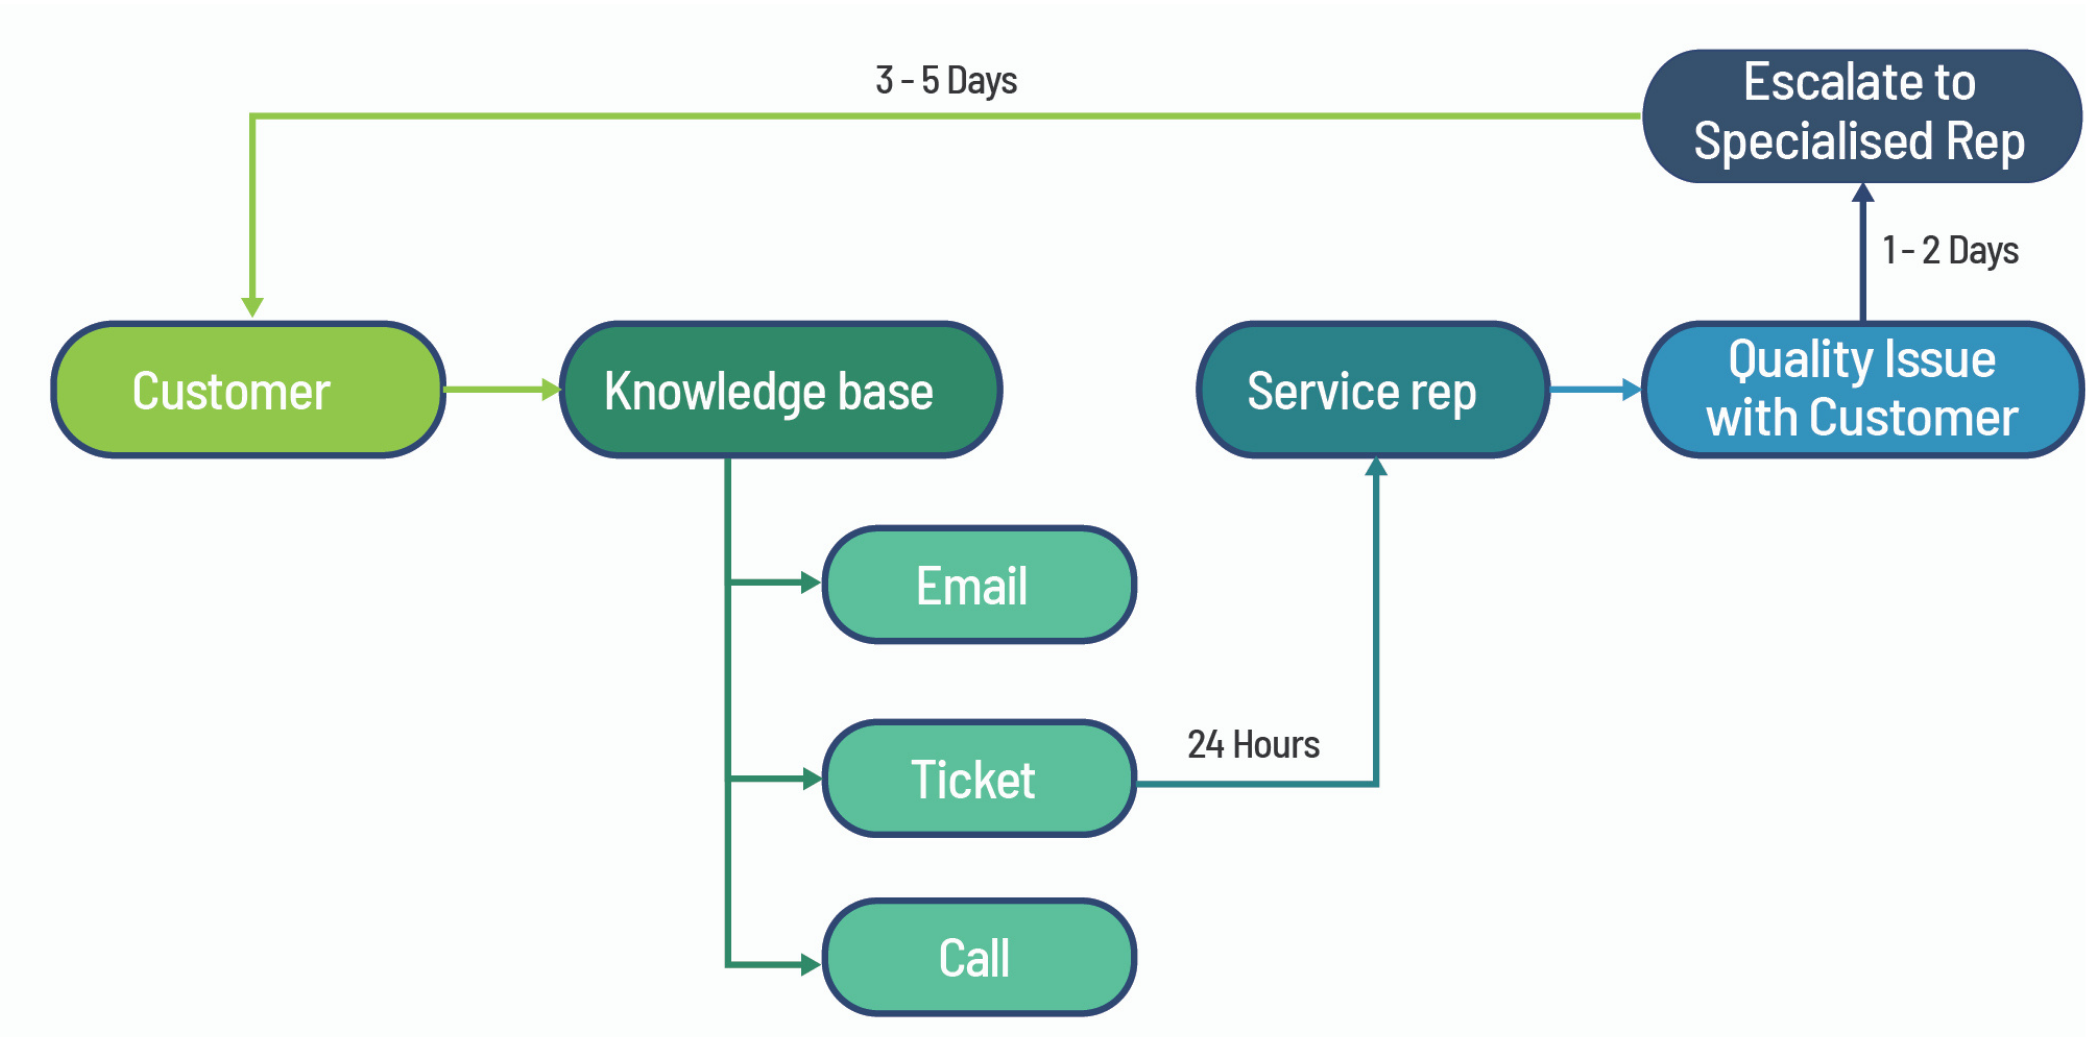 TYPICAL CUSTOMER SERVICE PROCESS